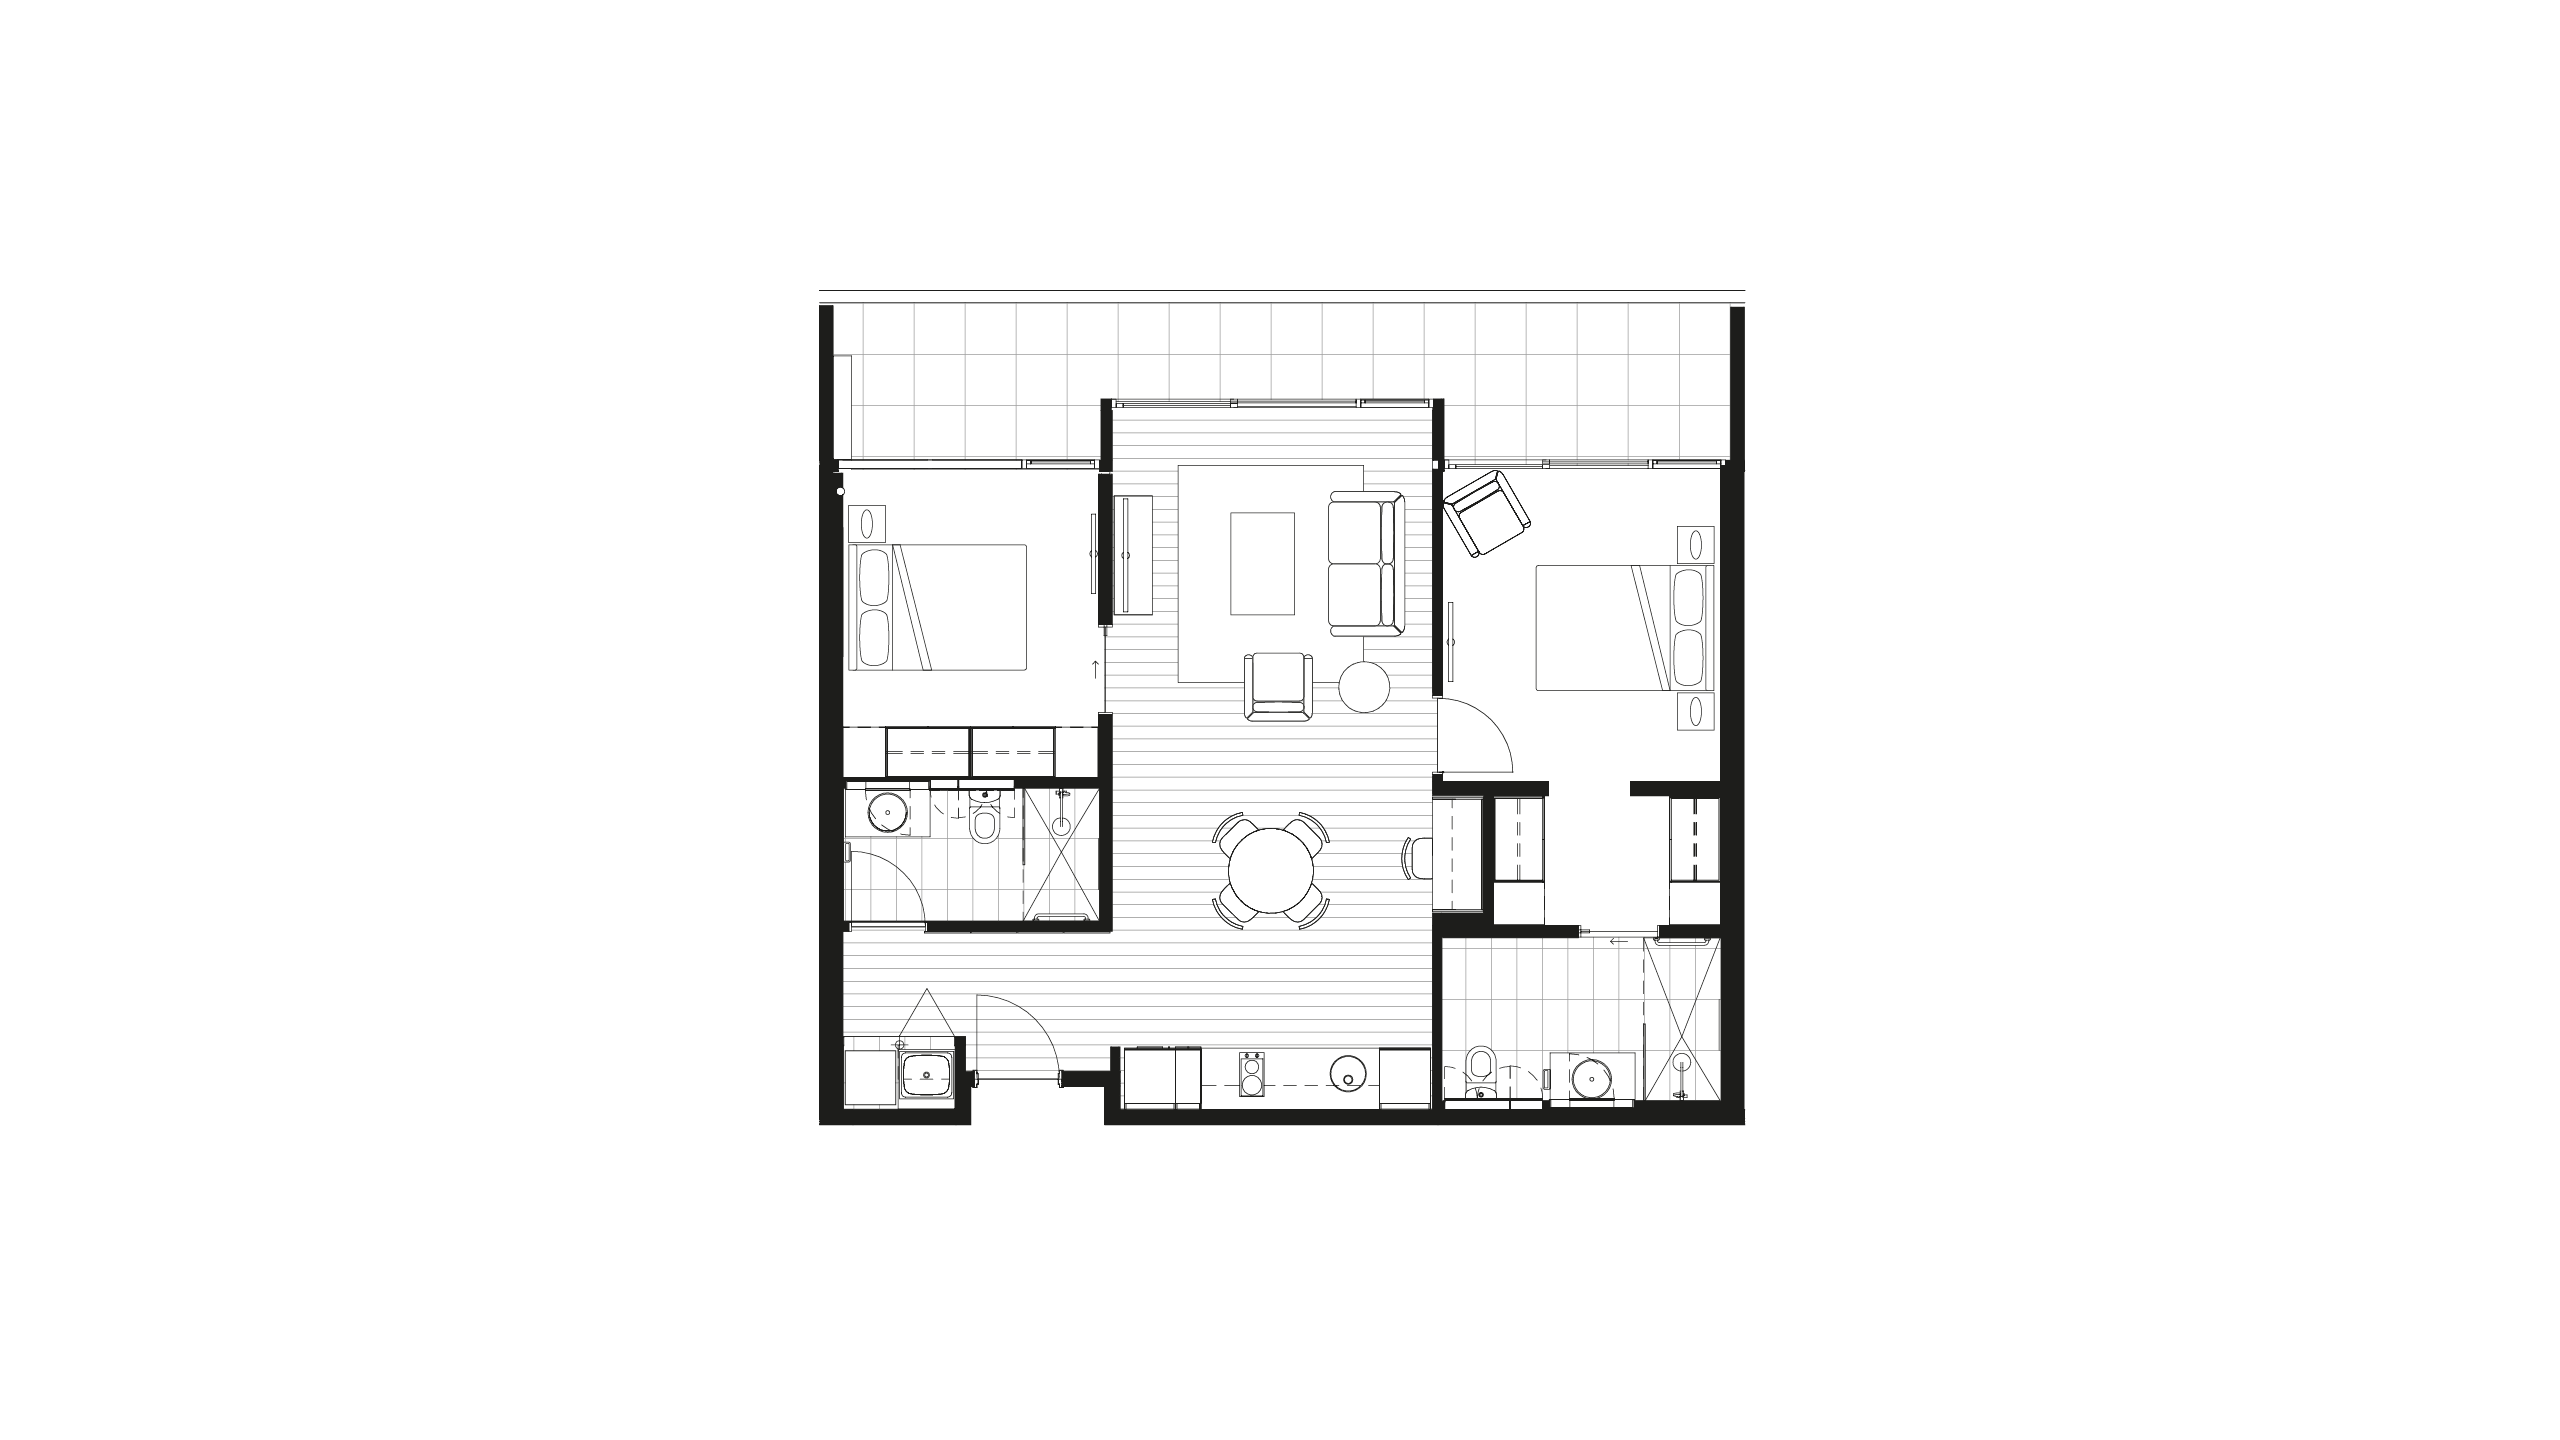 Floorplan - Apartment 104 at Morgan Glen Iris